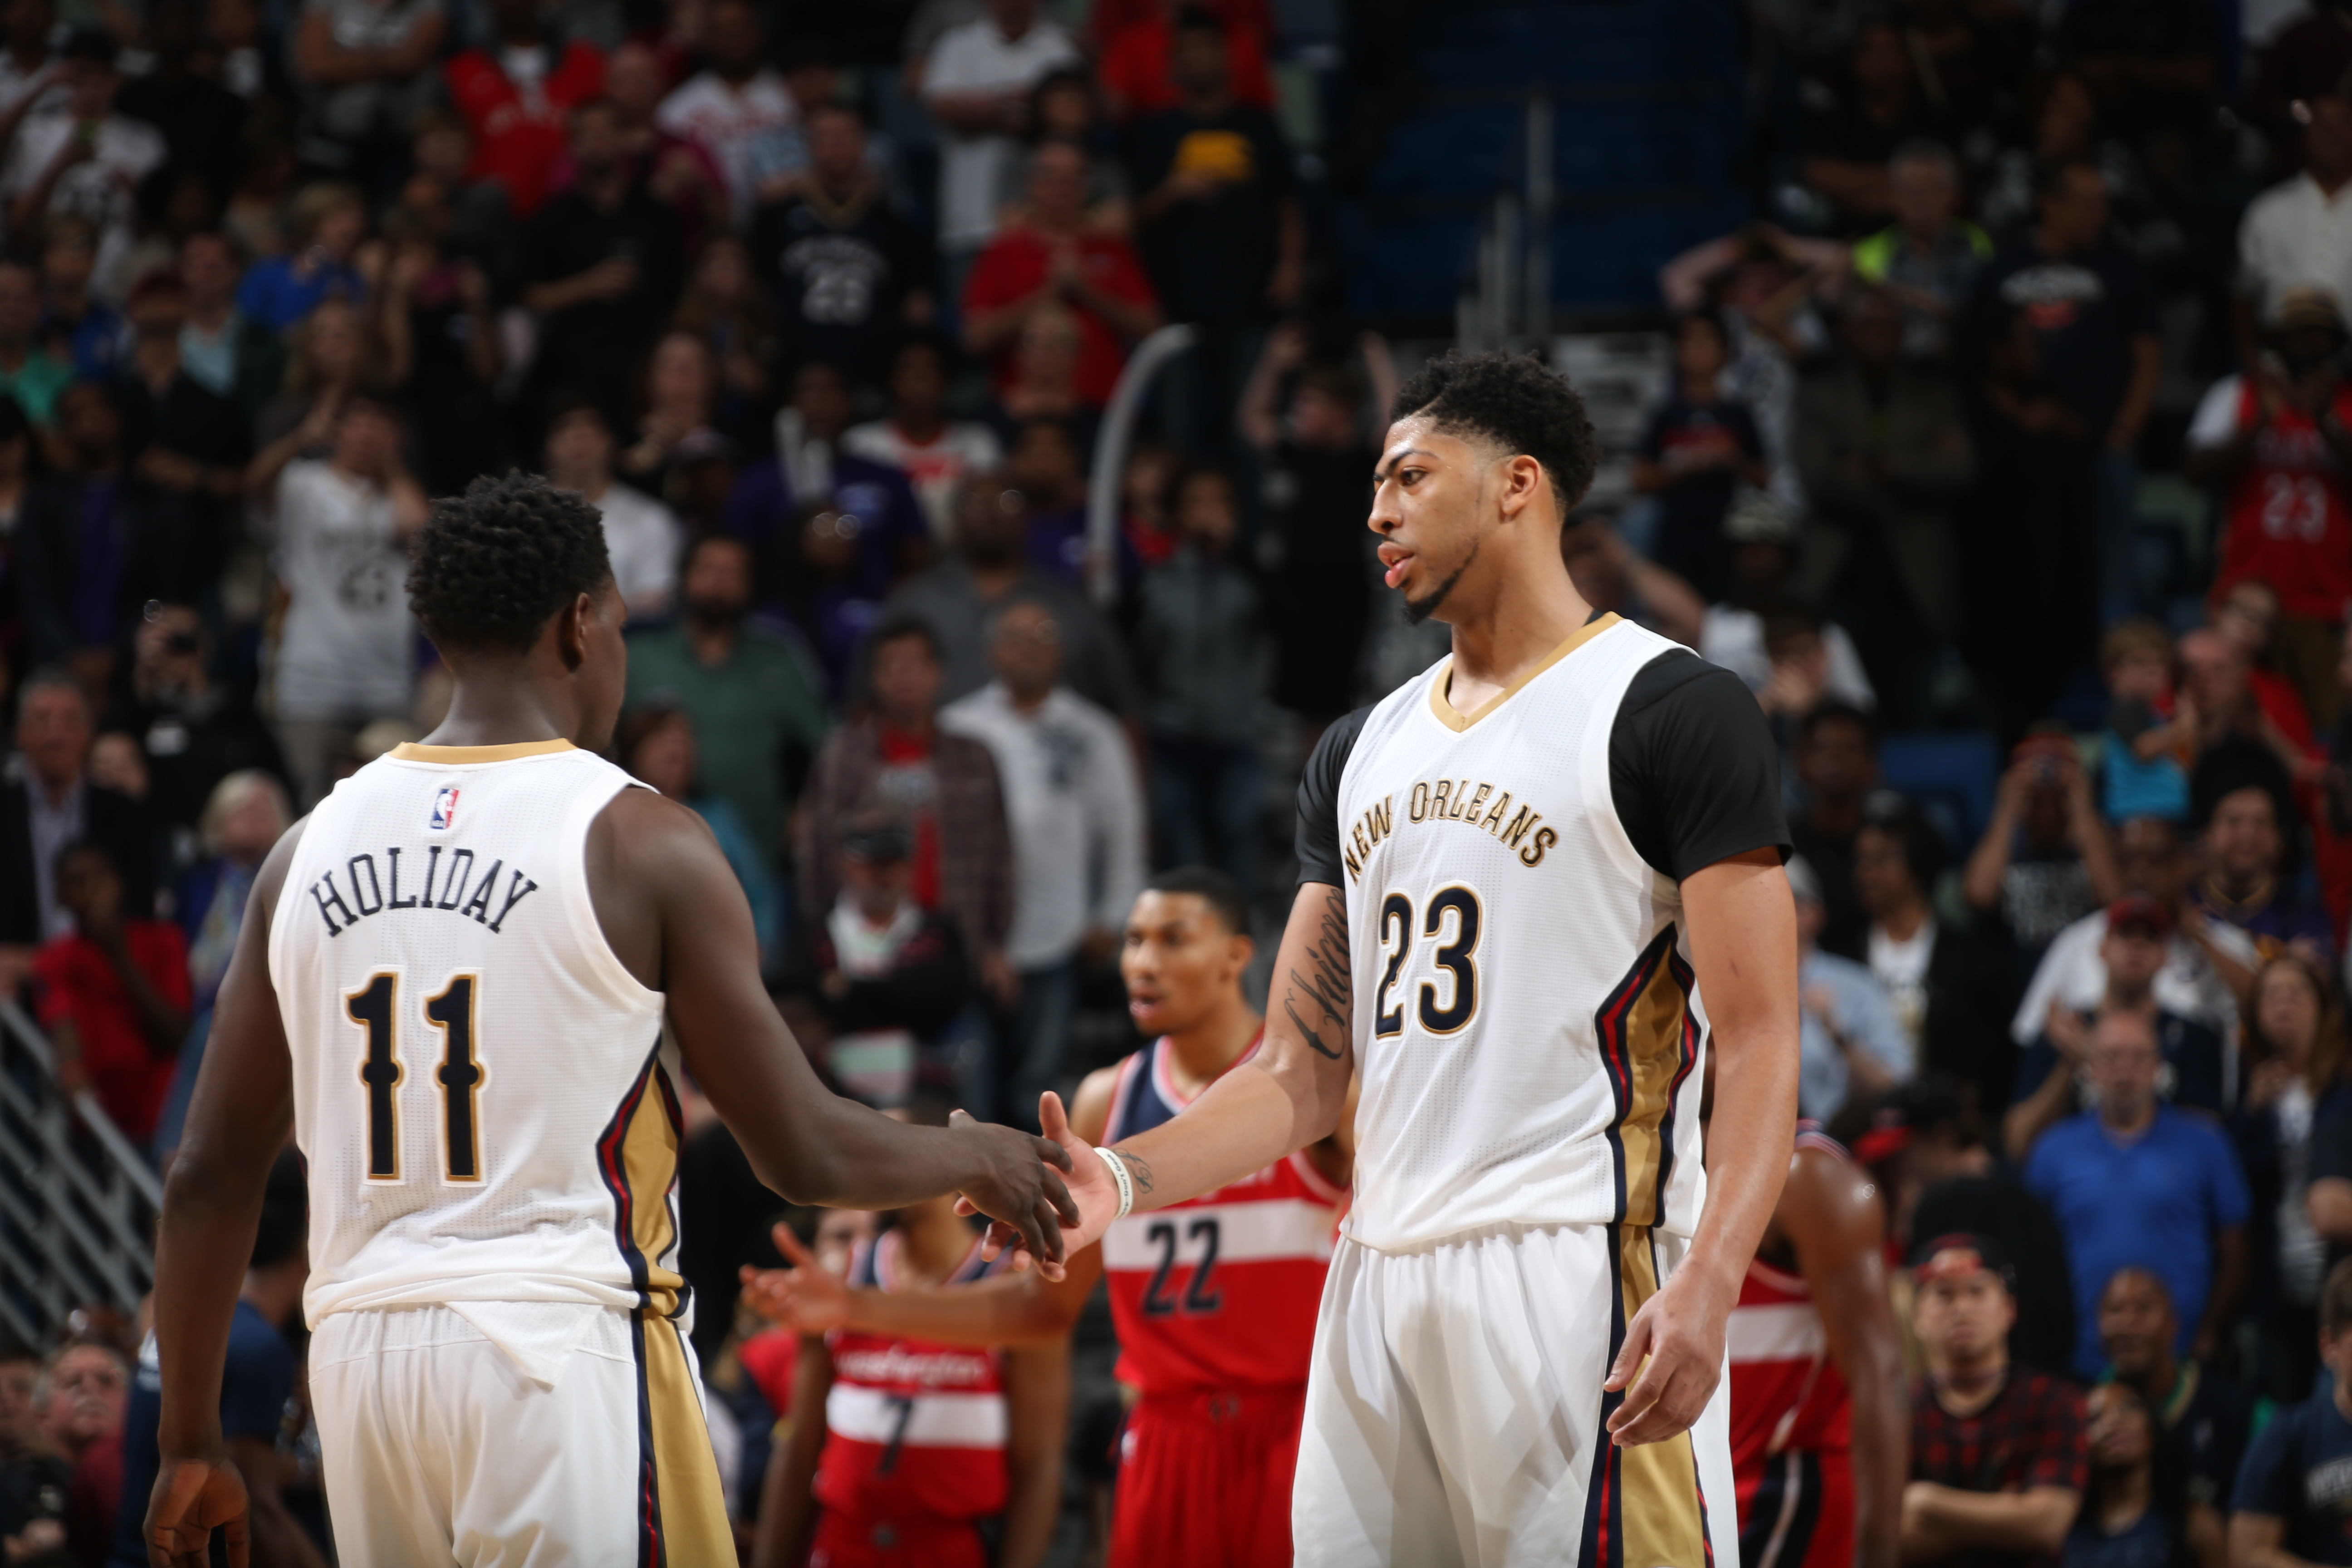 NEW ORLEANS, LA - DECEMBER 11:  Jrue Holiday #11 of the New Orleans Pelicans high fives Anthony Davis #23 of the New Orleans Pelicans during the game against the Washington Wizards on December 11, 2015 at the Smoothie King Center in New Orleans, Louisiana